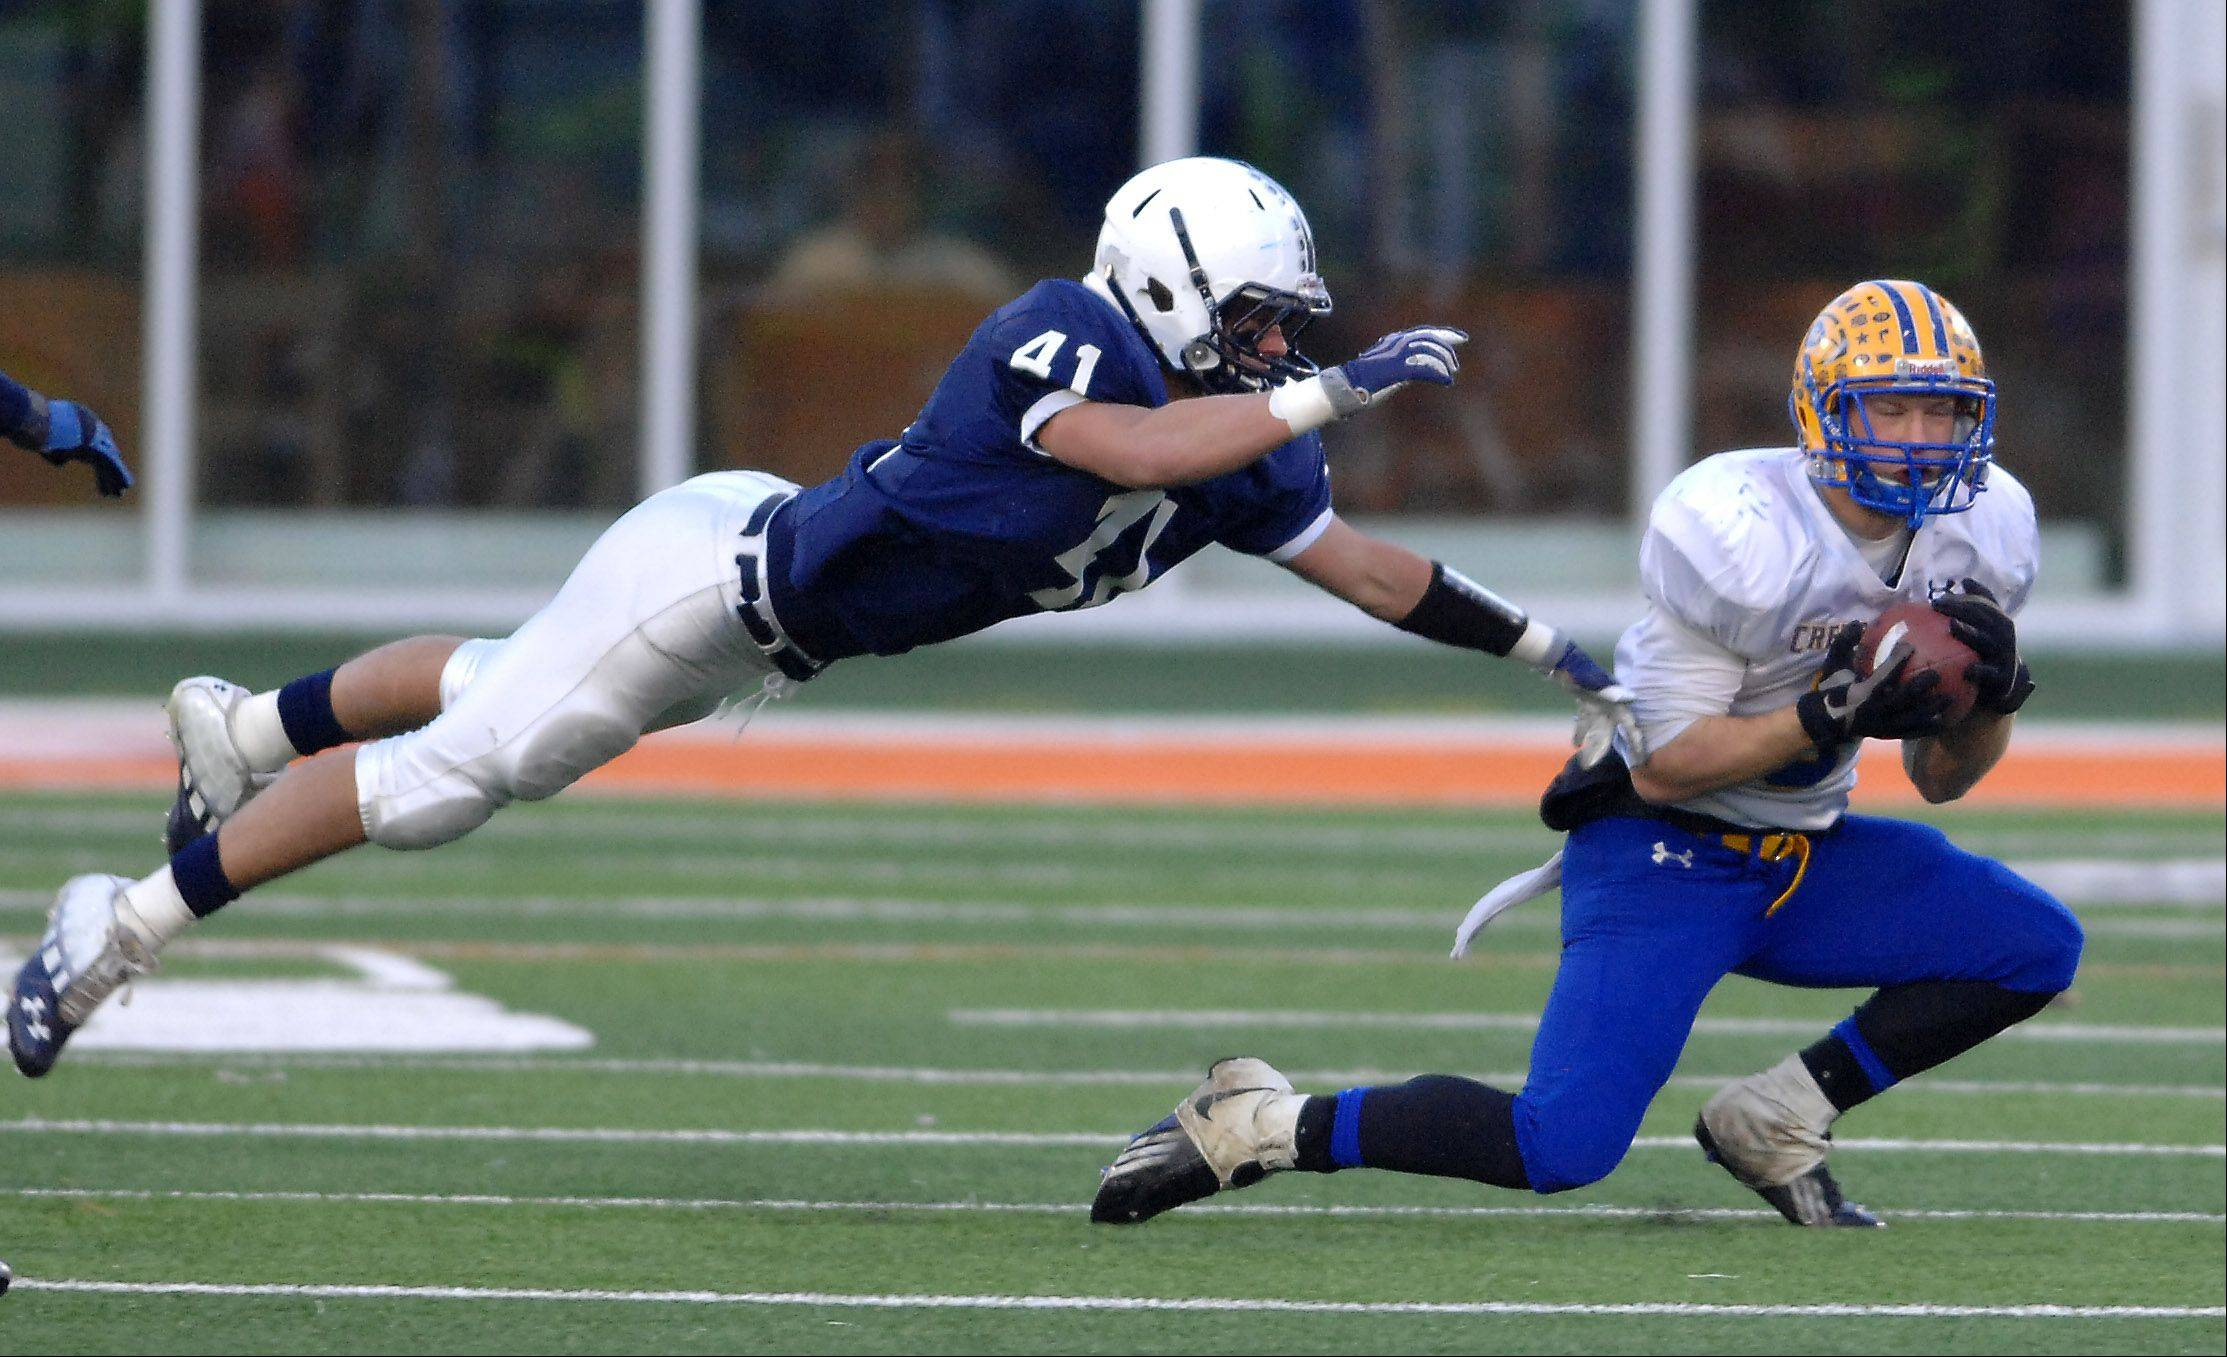 Cary-Grove's Zach Marszal (41) dives but can't break up a pass that is caught by a Crete-Monee receiver during Saturday's Class 6A state title game at Memorial Stadium in Champaign.